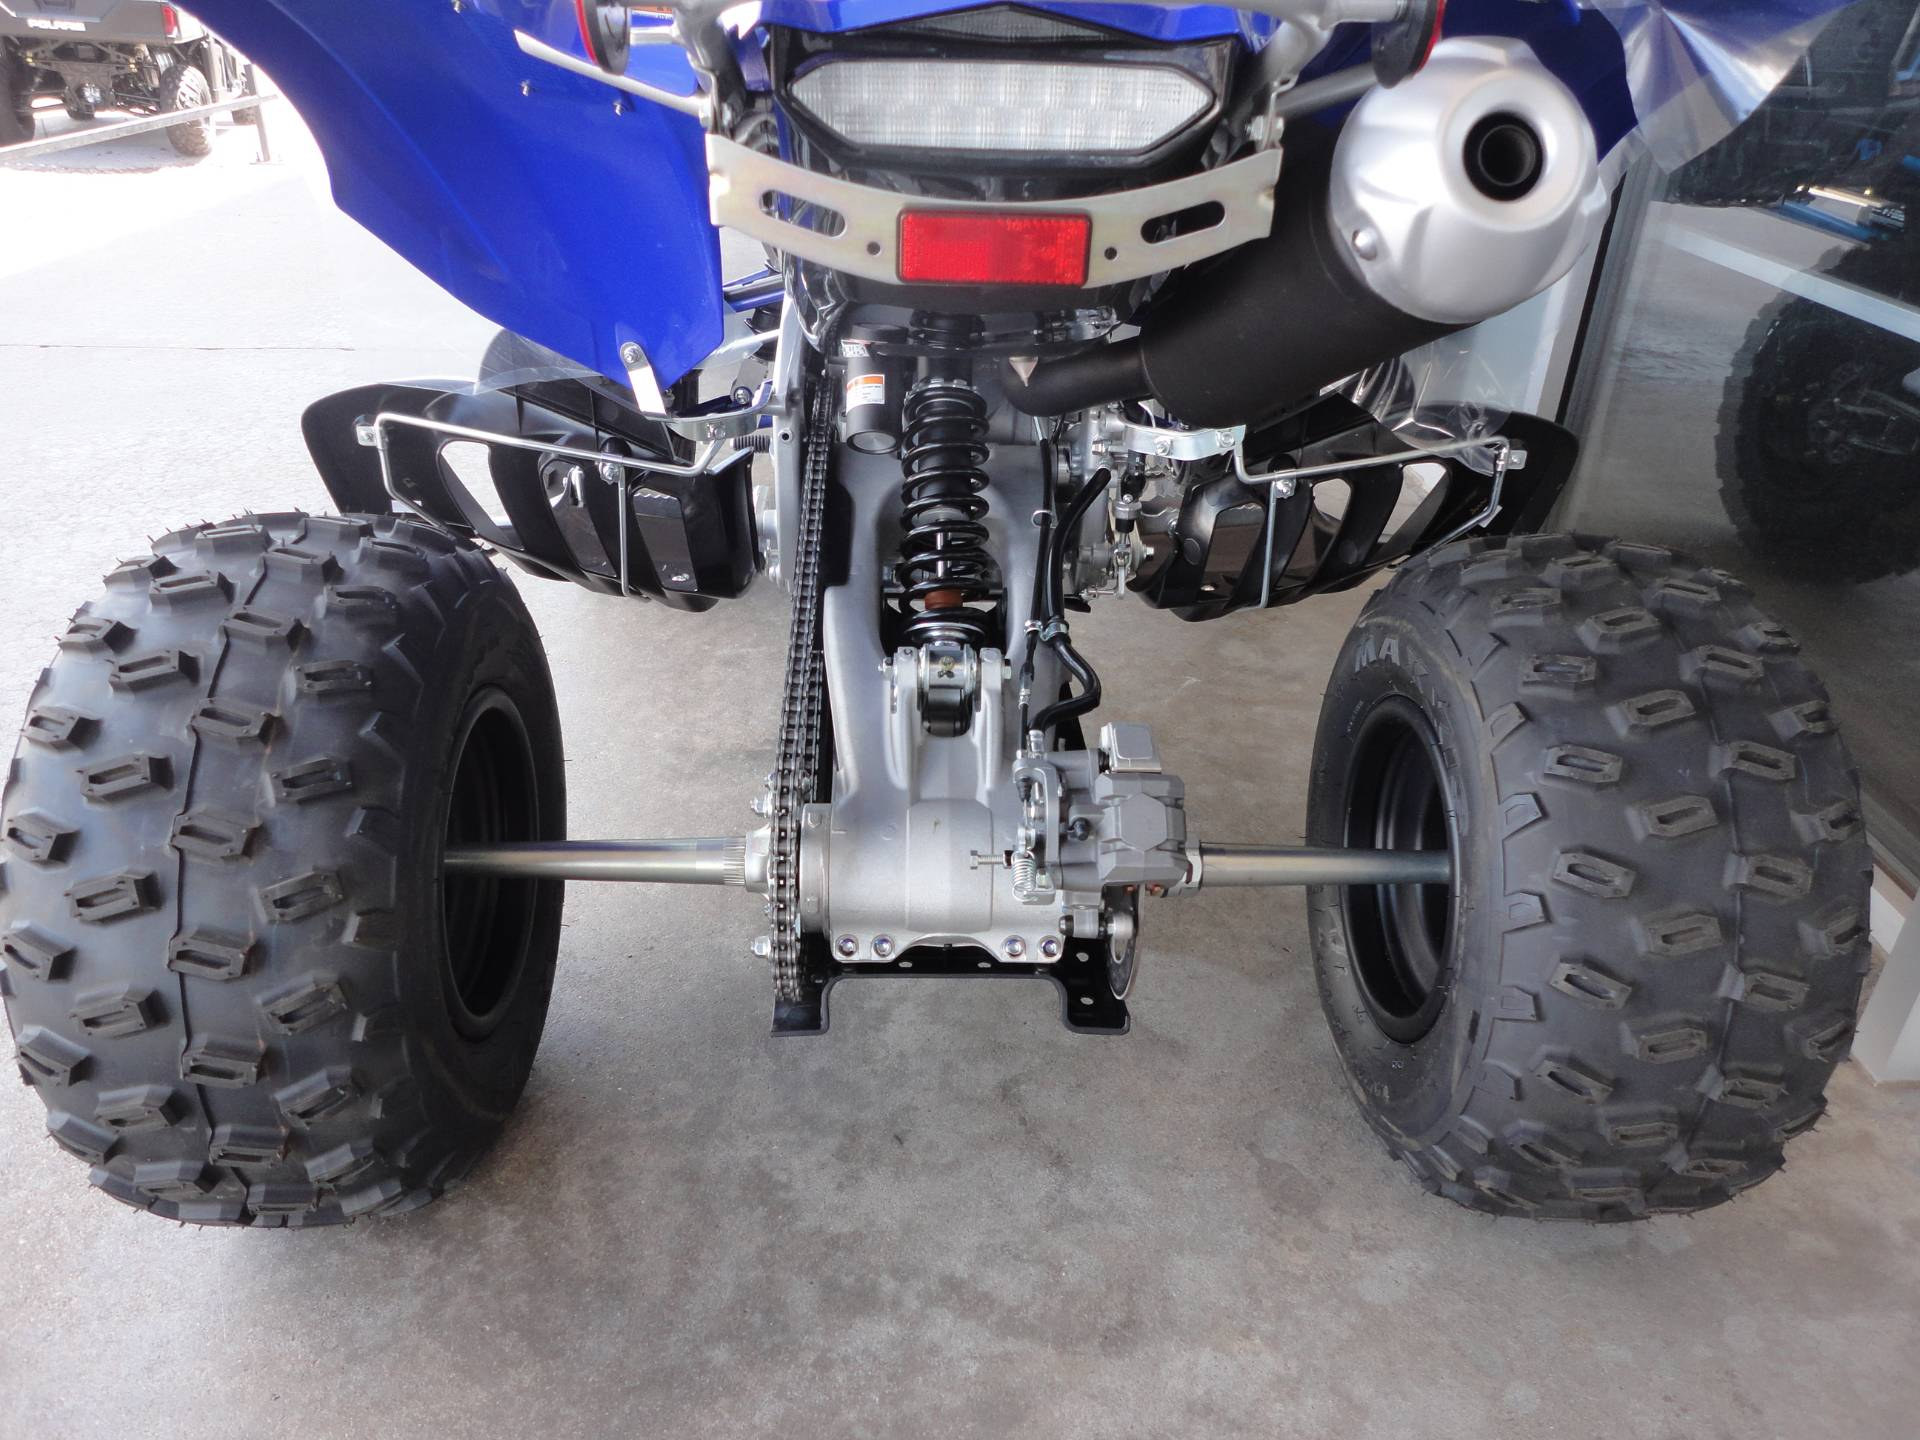 2020 Yamaha Raptor 700R in Denver, Colorado - Photo 12